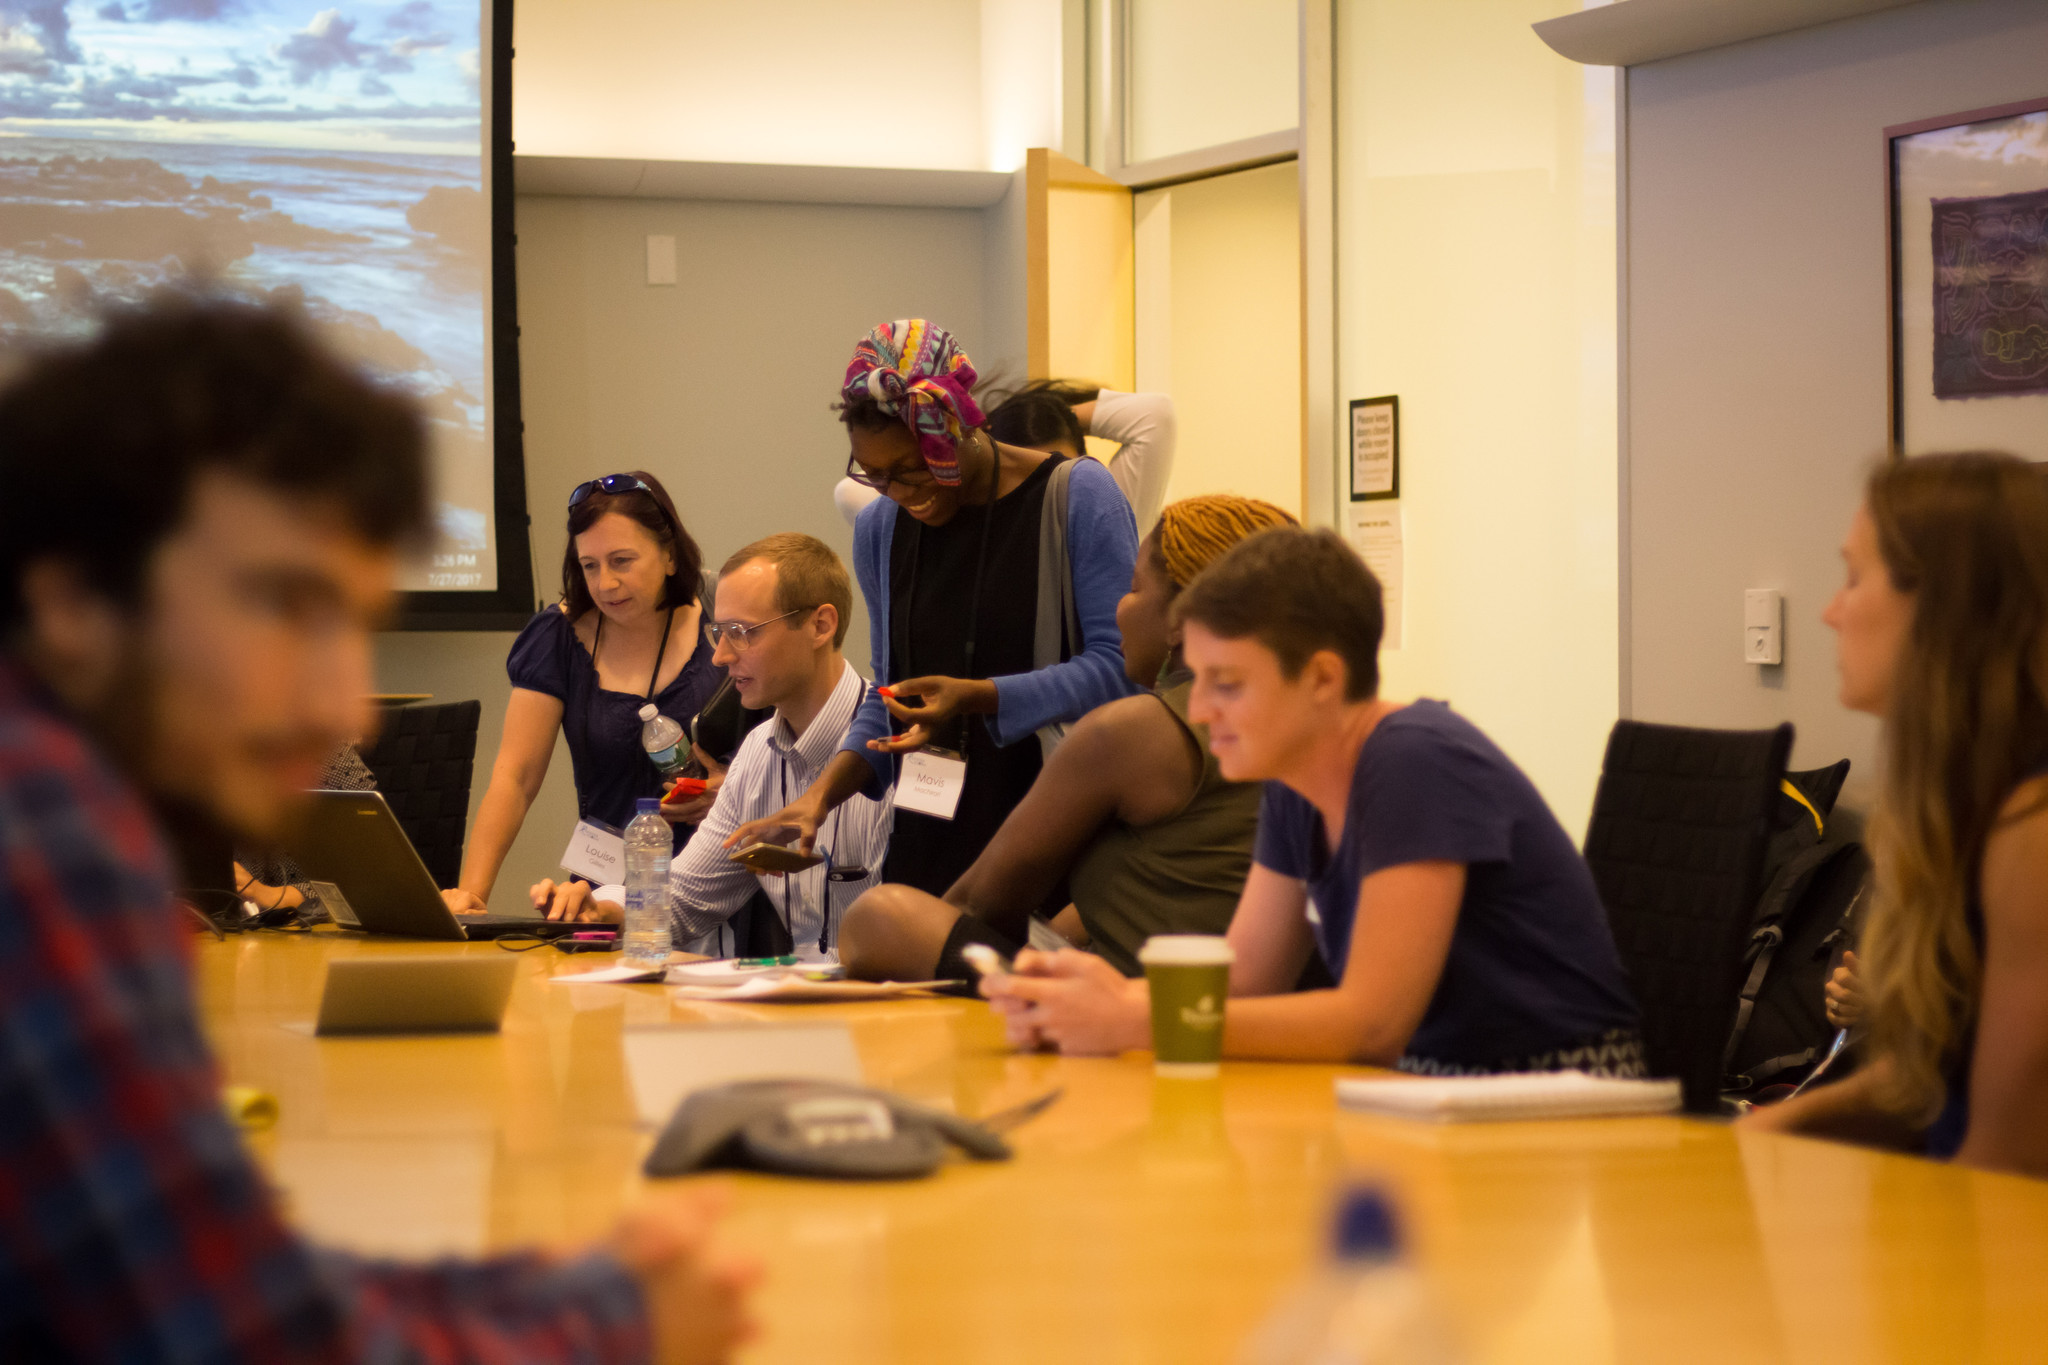 Group of graduate students sitting and talking at conference table with a large projection screen in the background.